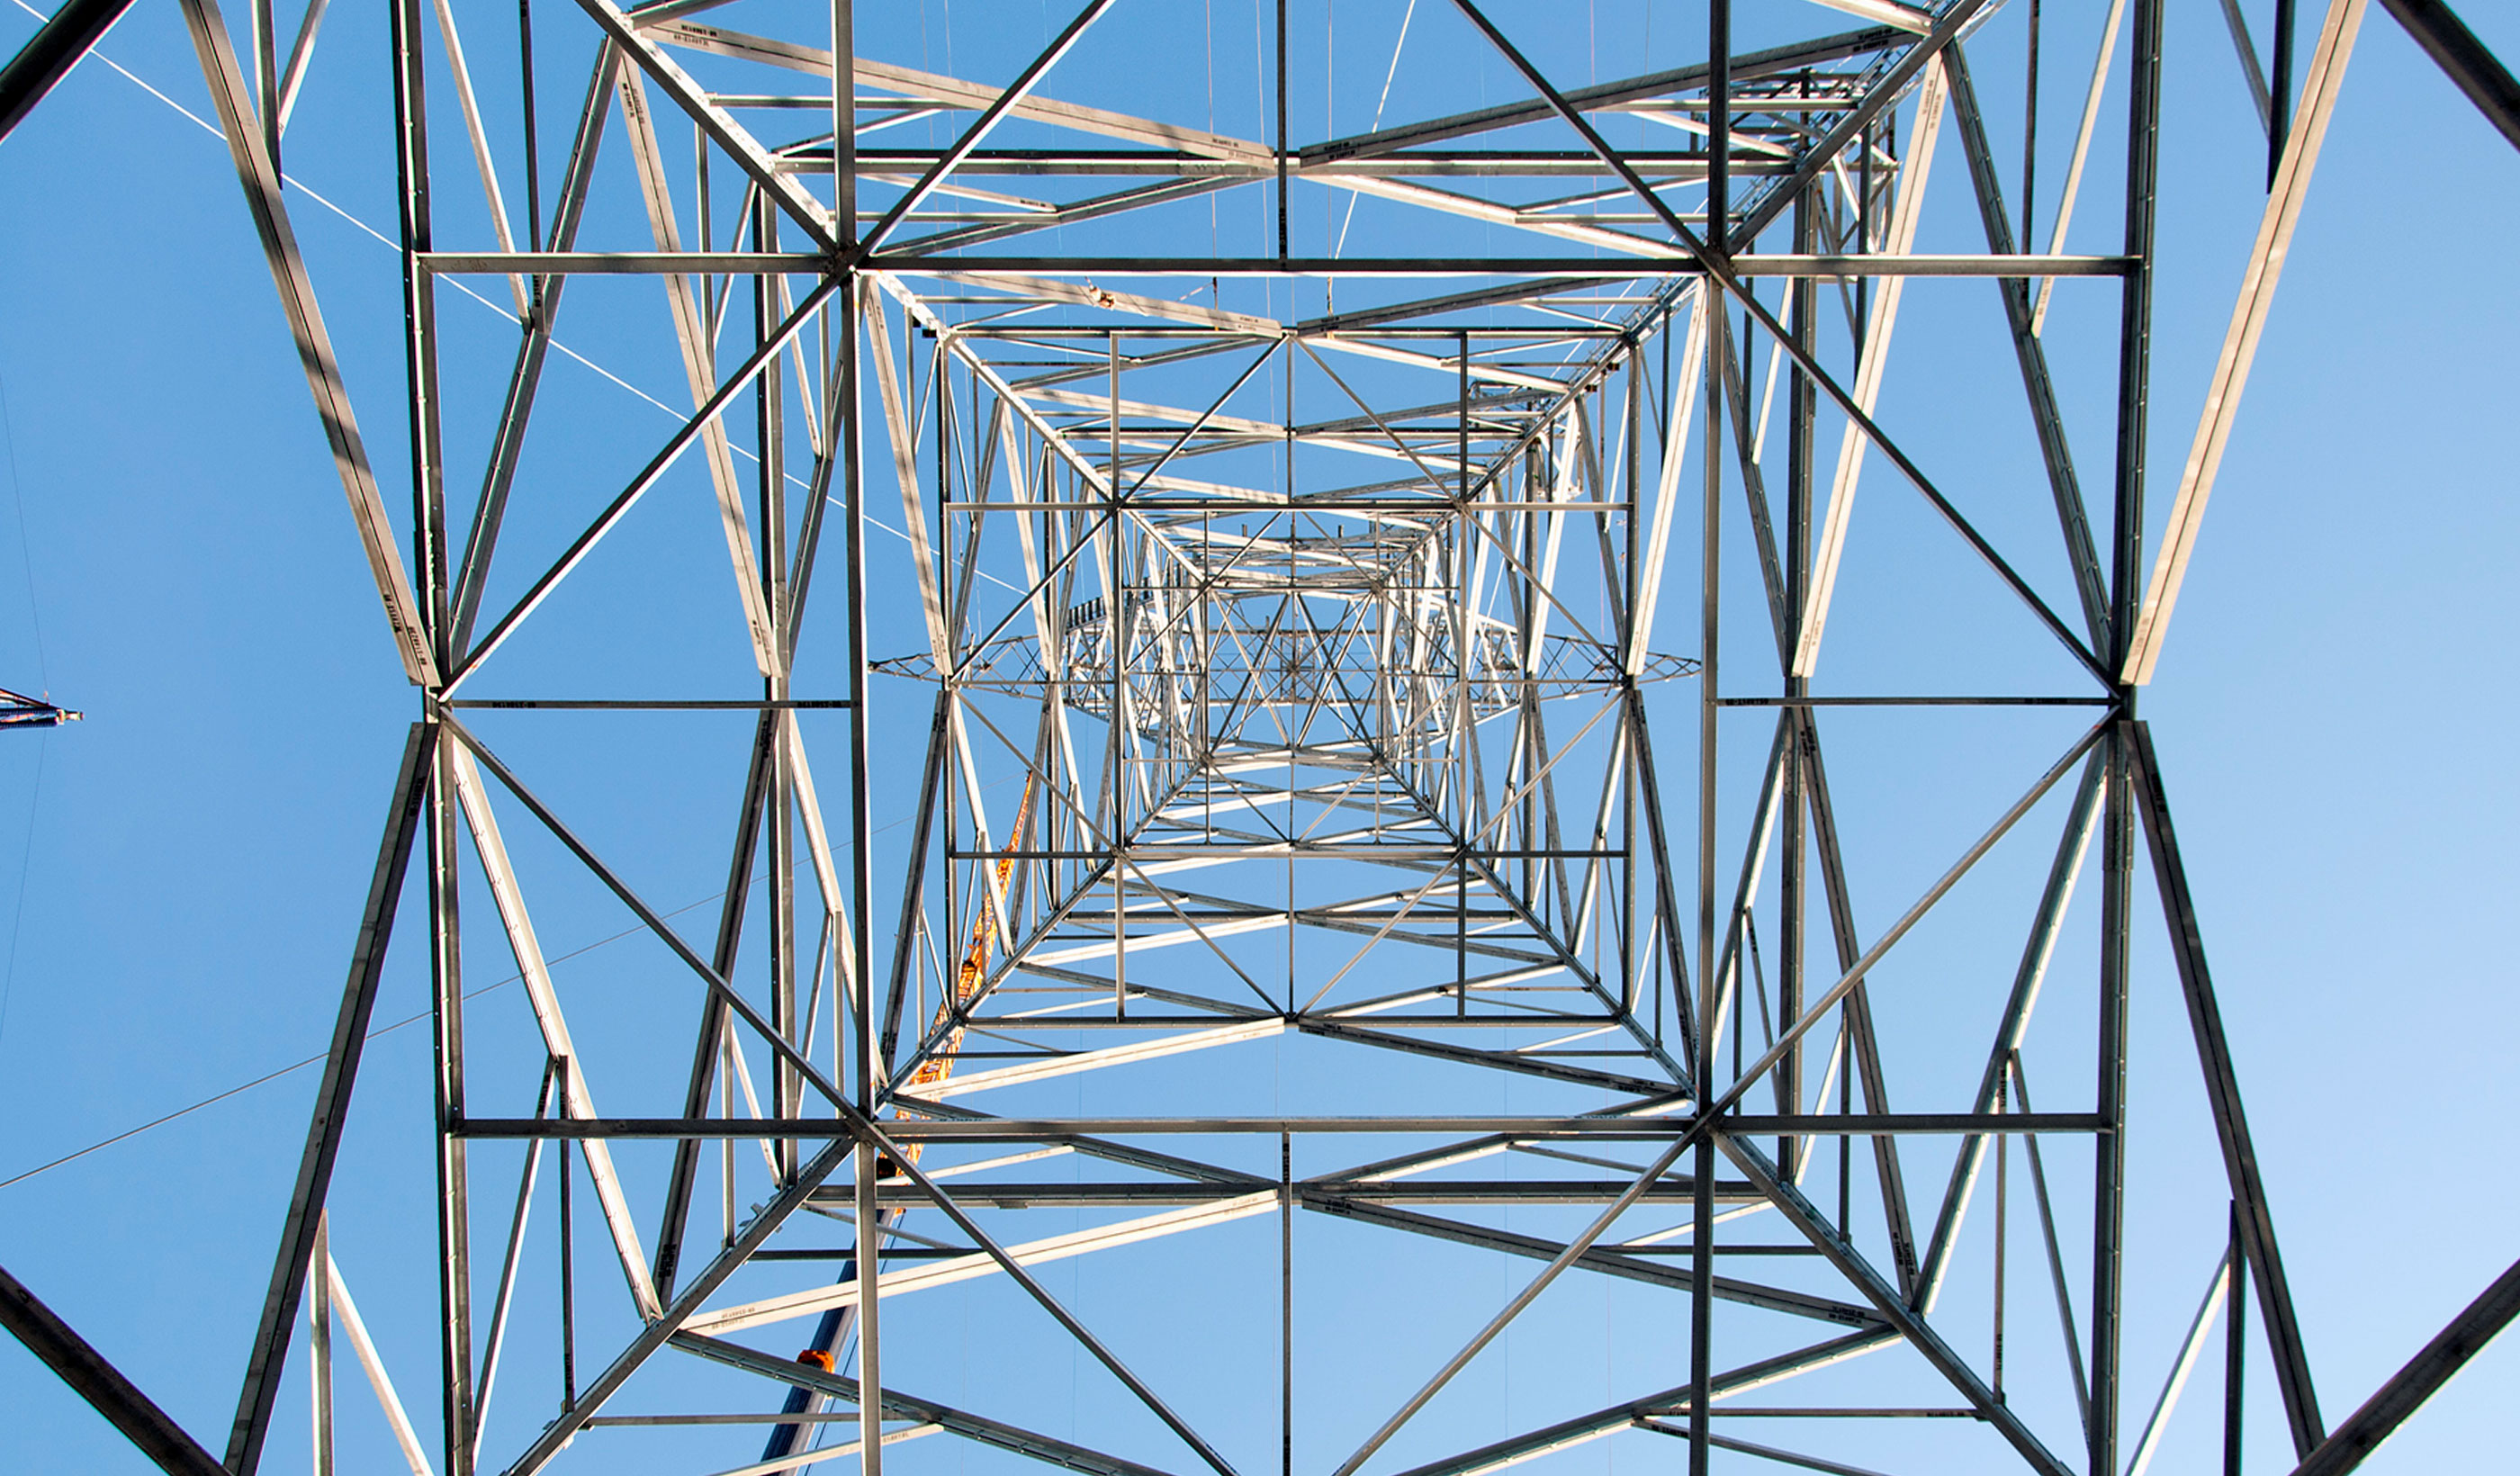 About Transmission Lines